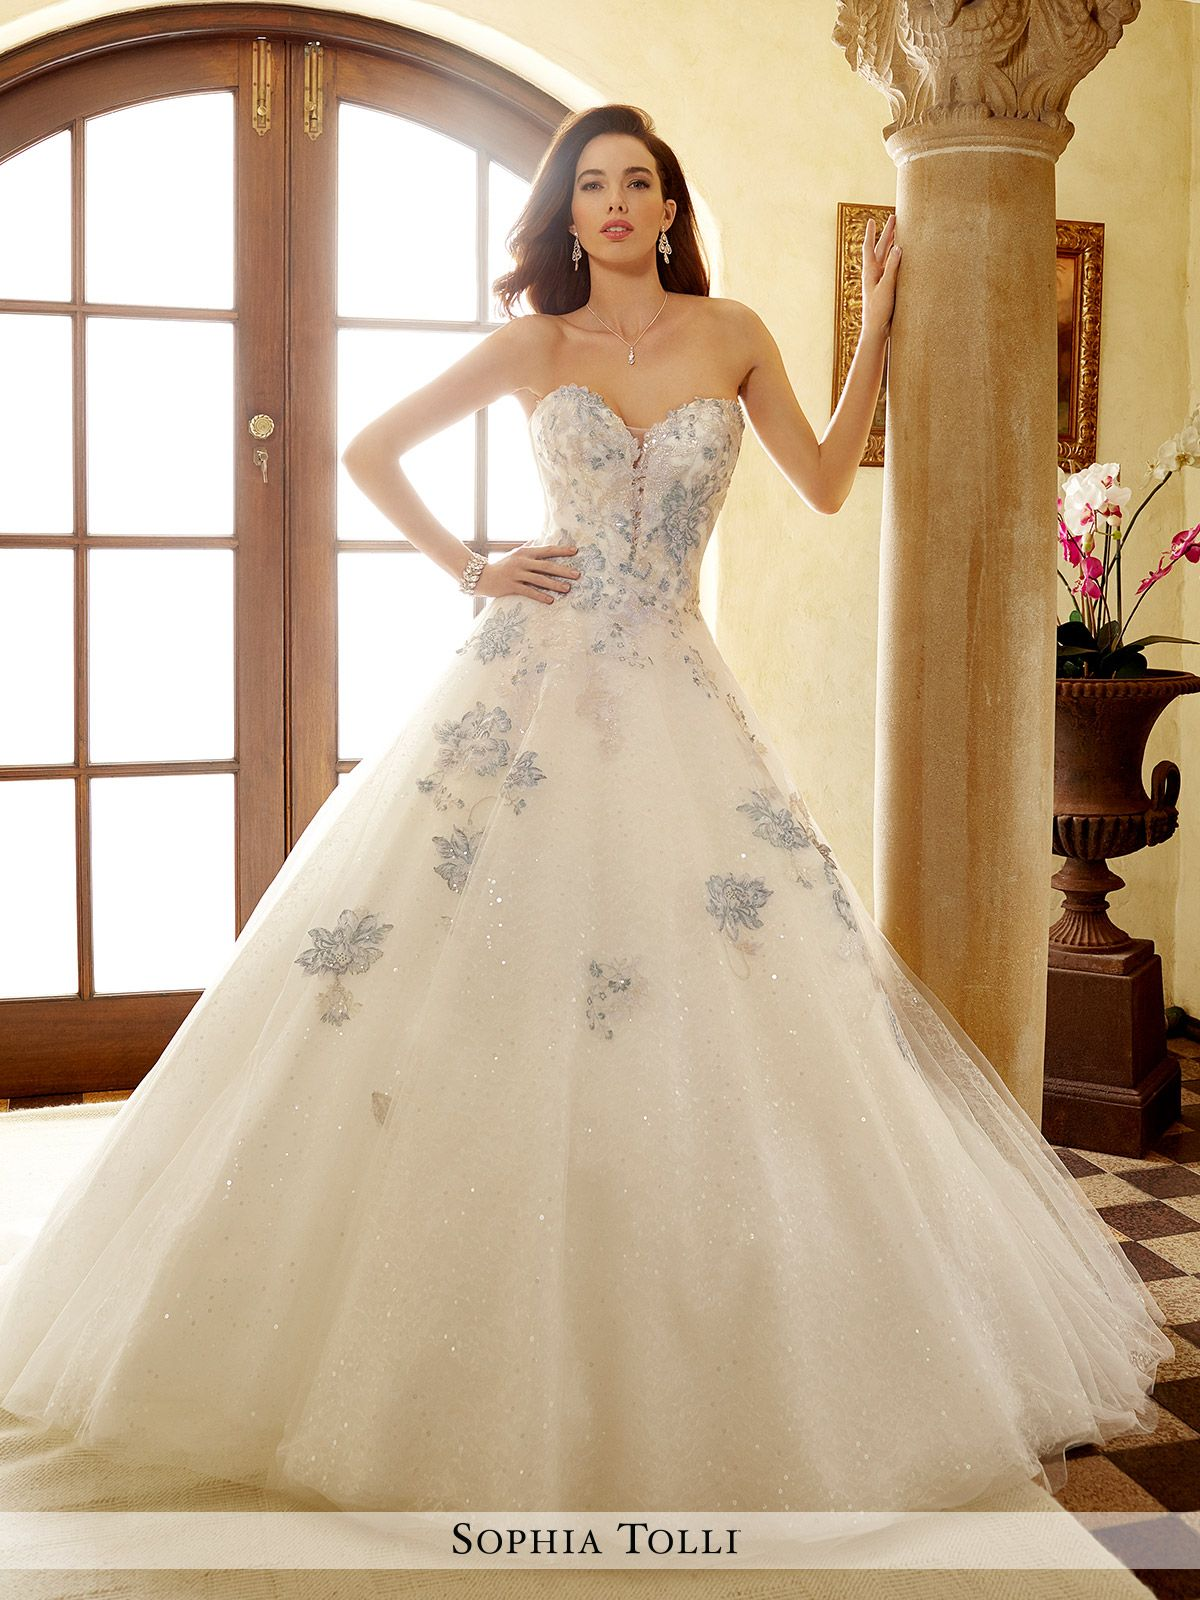 Sophia Tolli Designer Wedding Dresses A Fusion Of Modern Romance And Timeless Elegance And Timeless Romance The Sophia Tolli Australia Collection Is A Celeb Sophia Tolli Wedding Dresses Ball Gown